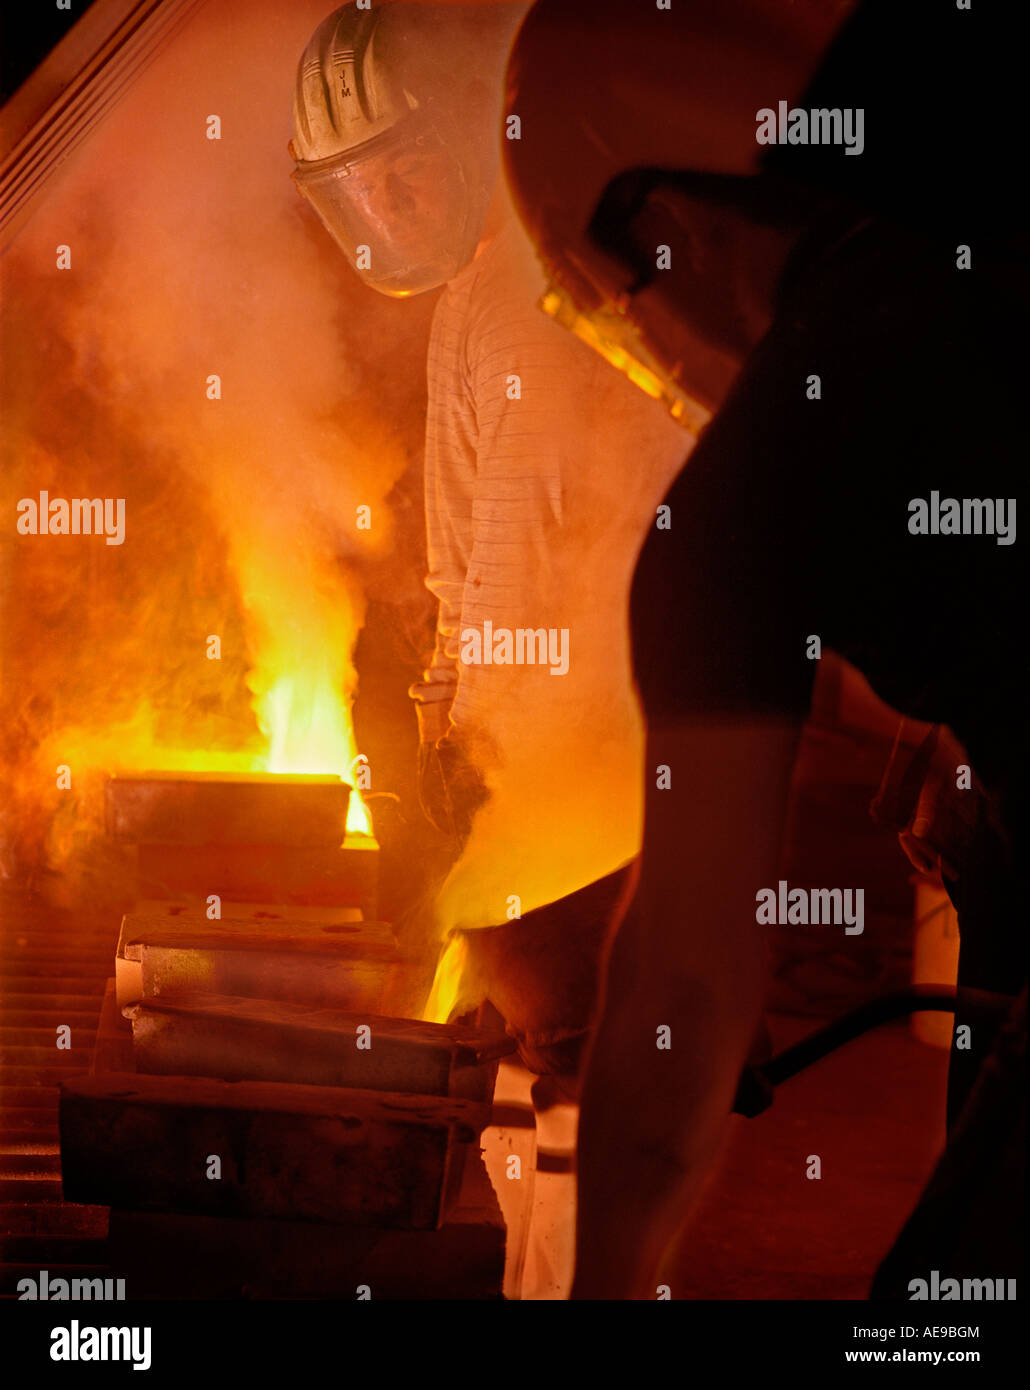 Bronze foundry men pouring molten bronze into moulds in smokey firey foundry - Stock Image